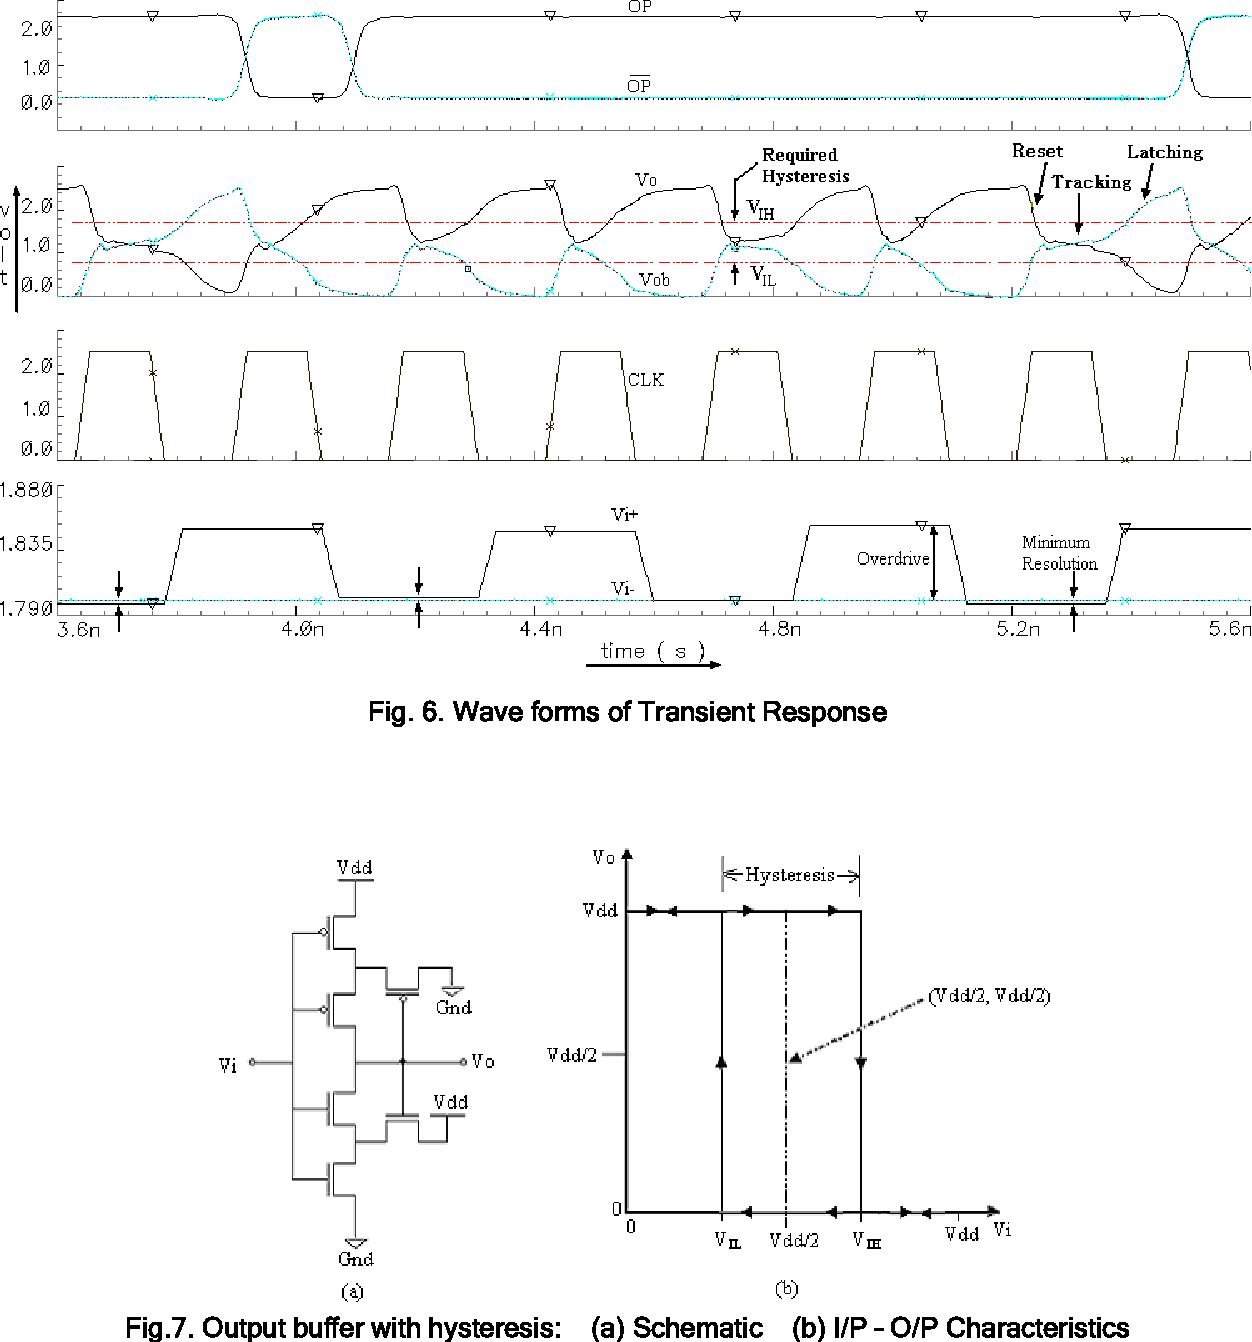 Fig. 6. Wave forms of Transient Response